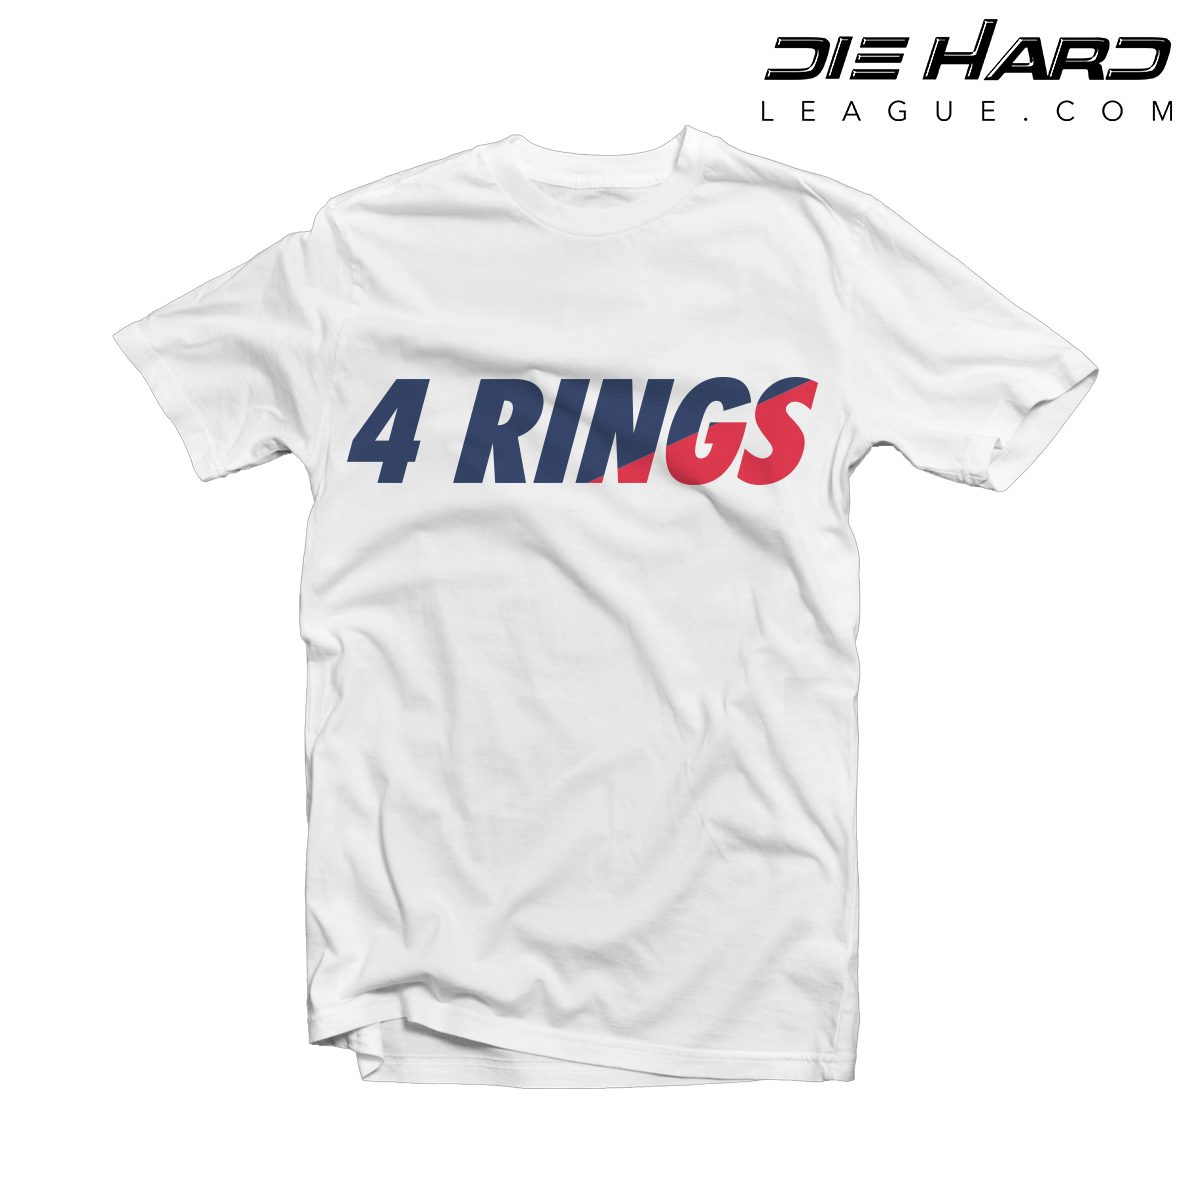 New england patriots t shirt 4 rings white tee nfl New england patriots shirts